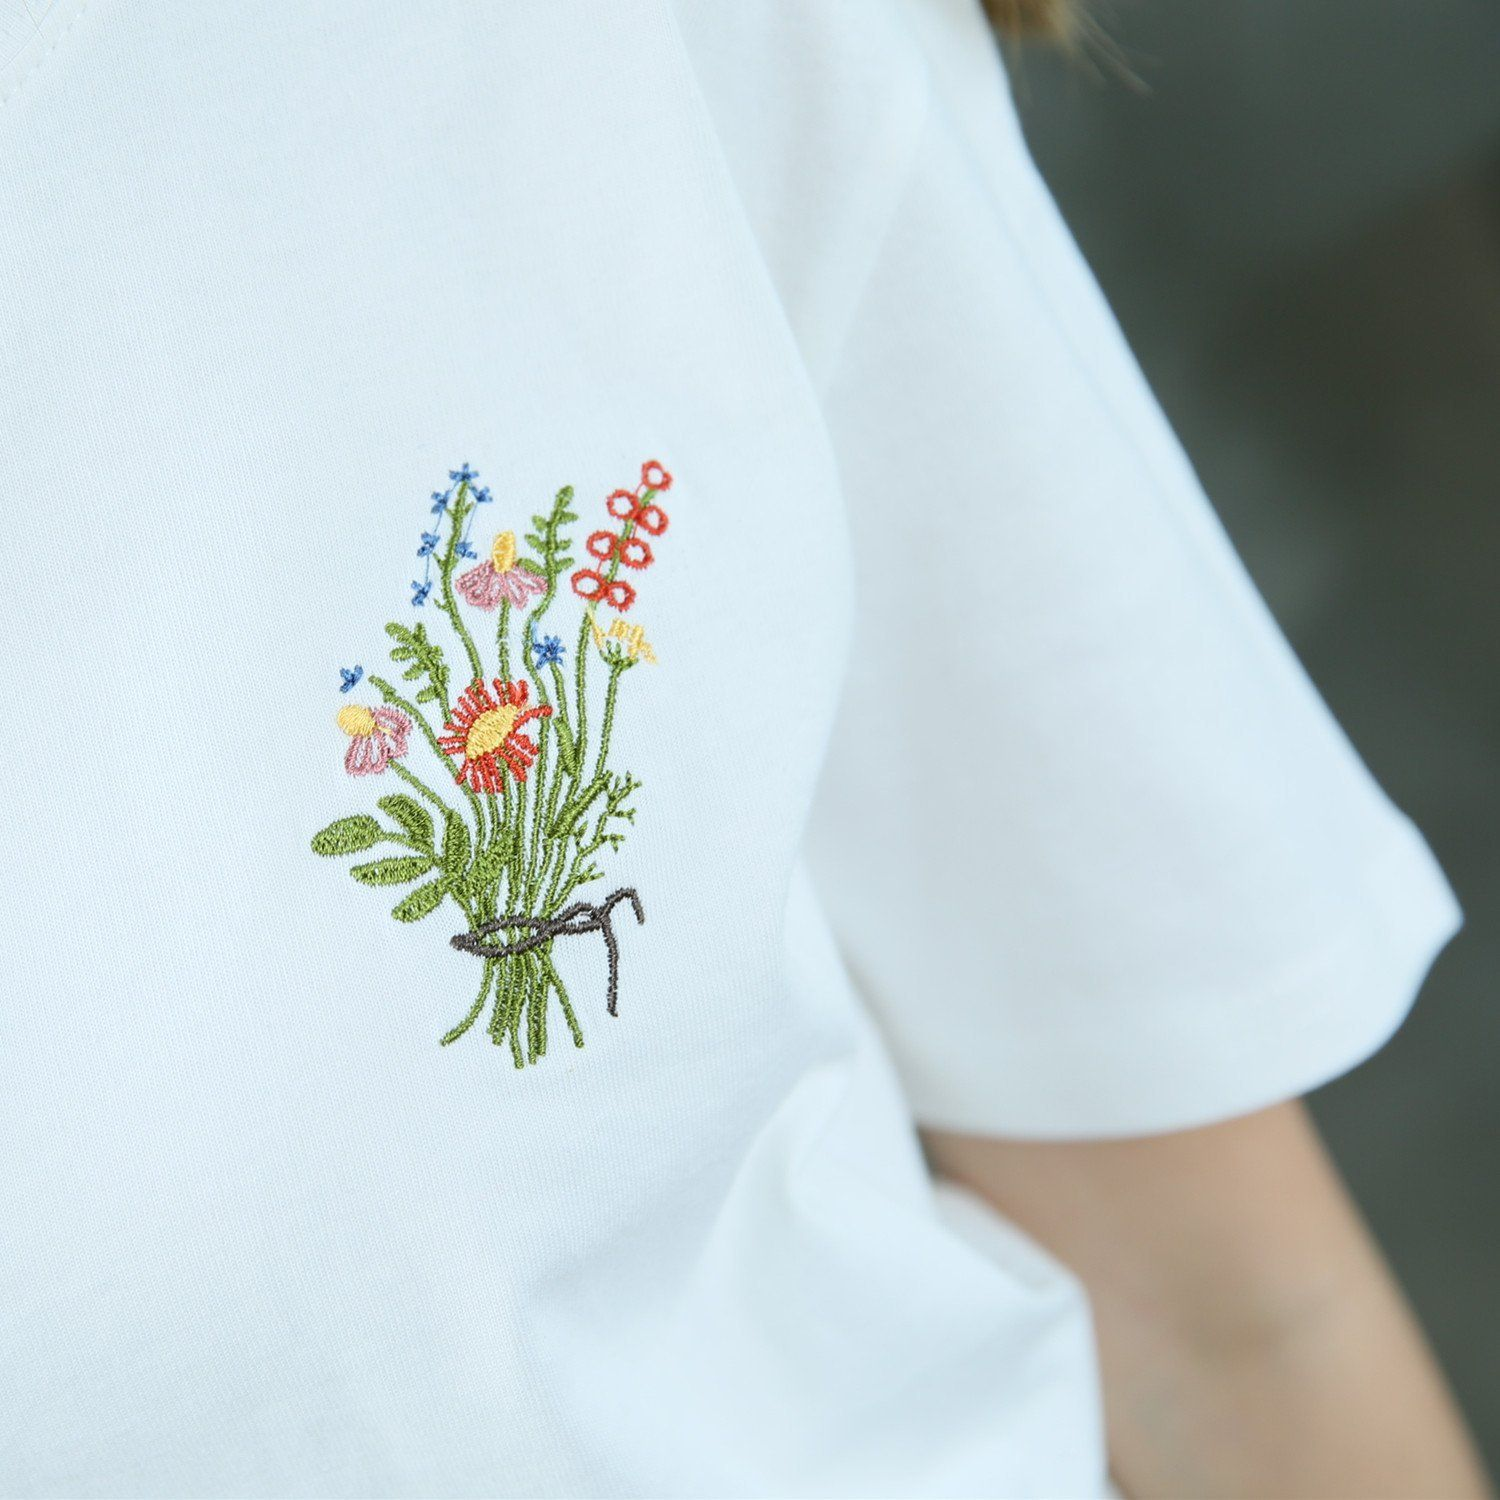 c2e60e831d6ae Wild flowers t-shirt | Aesthetic T-Shirts | Embroidery flowers ...